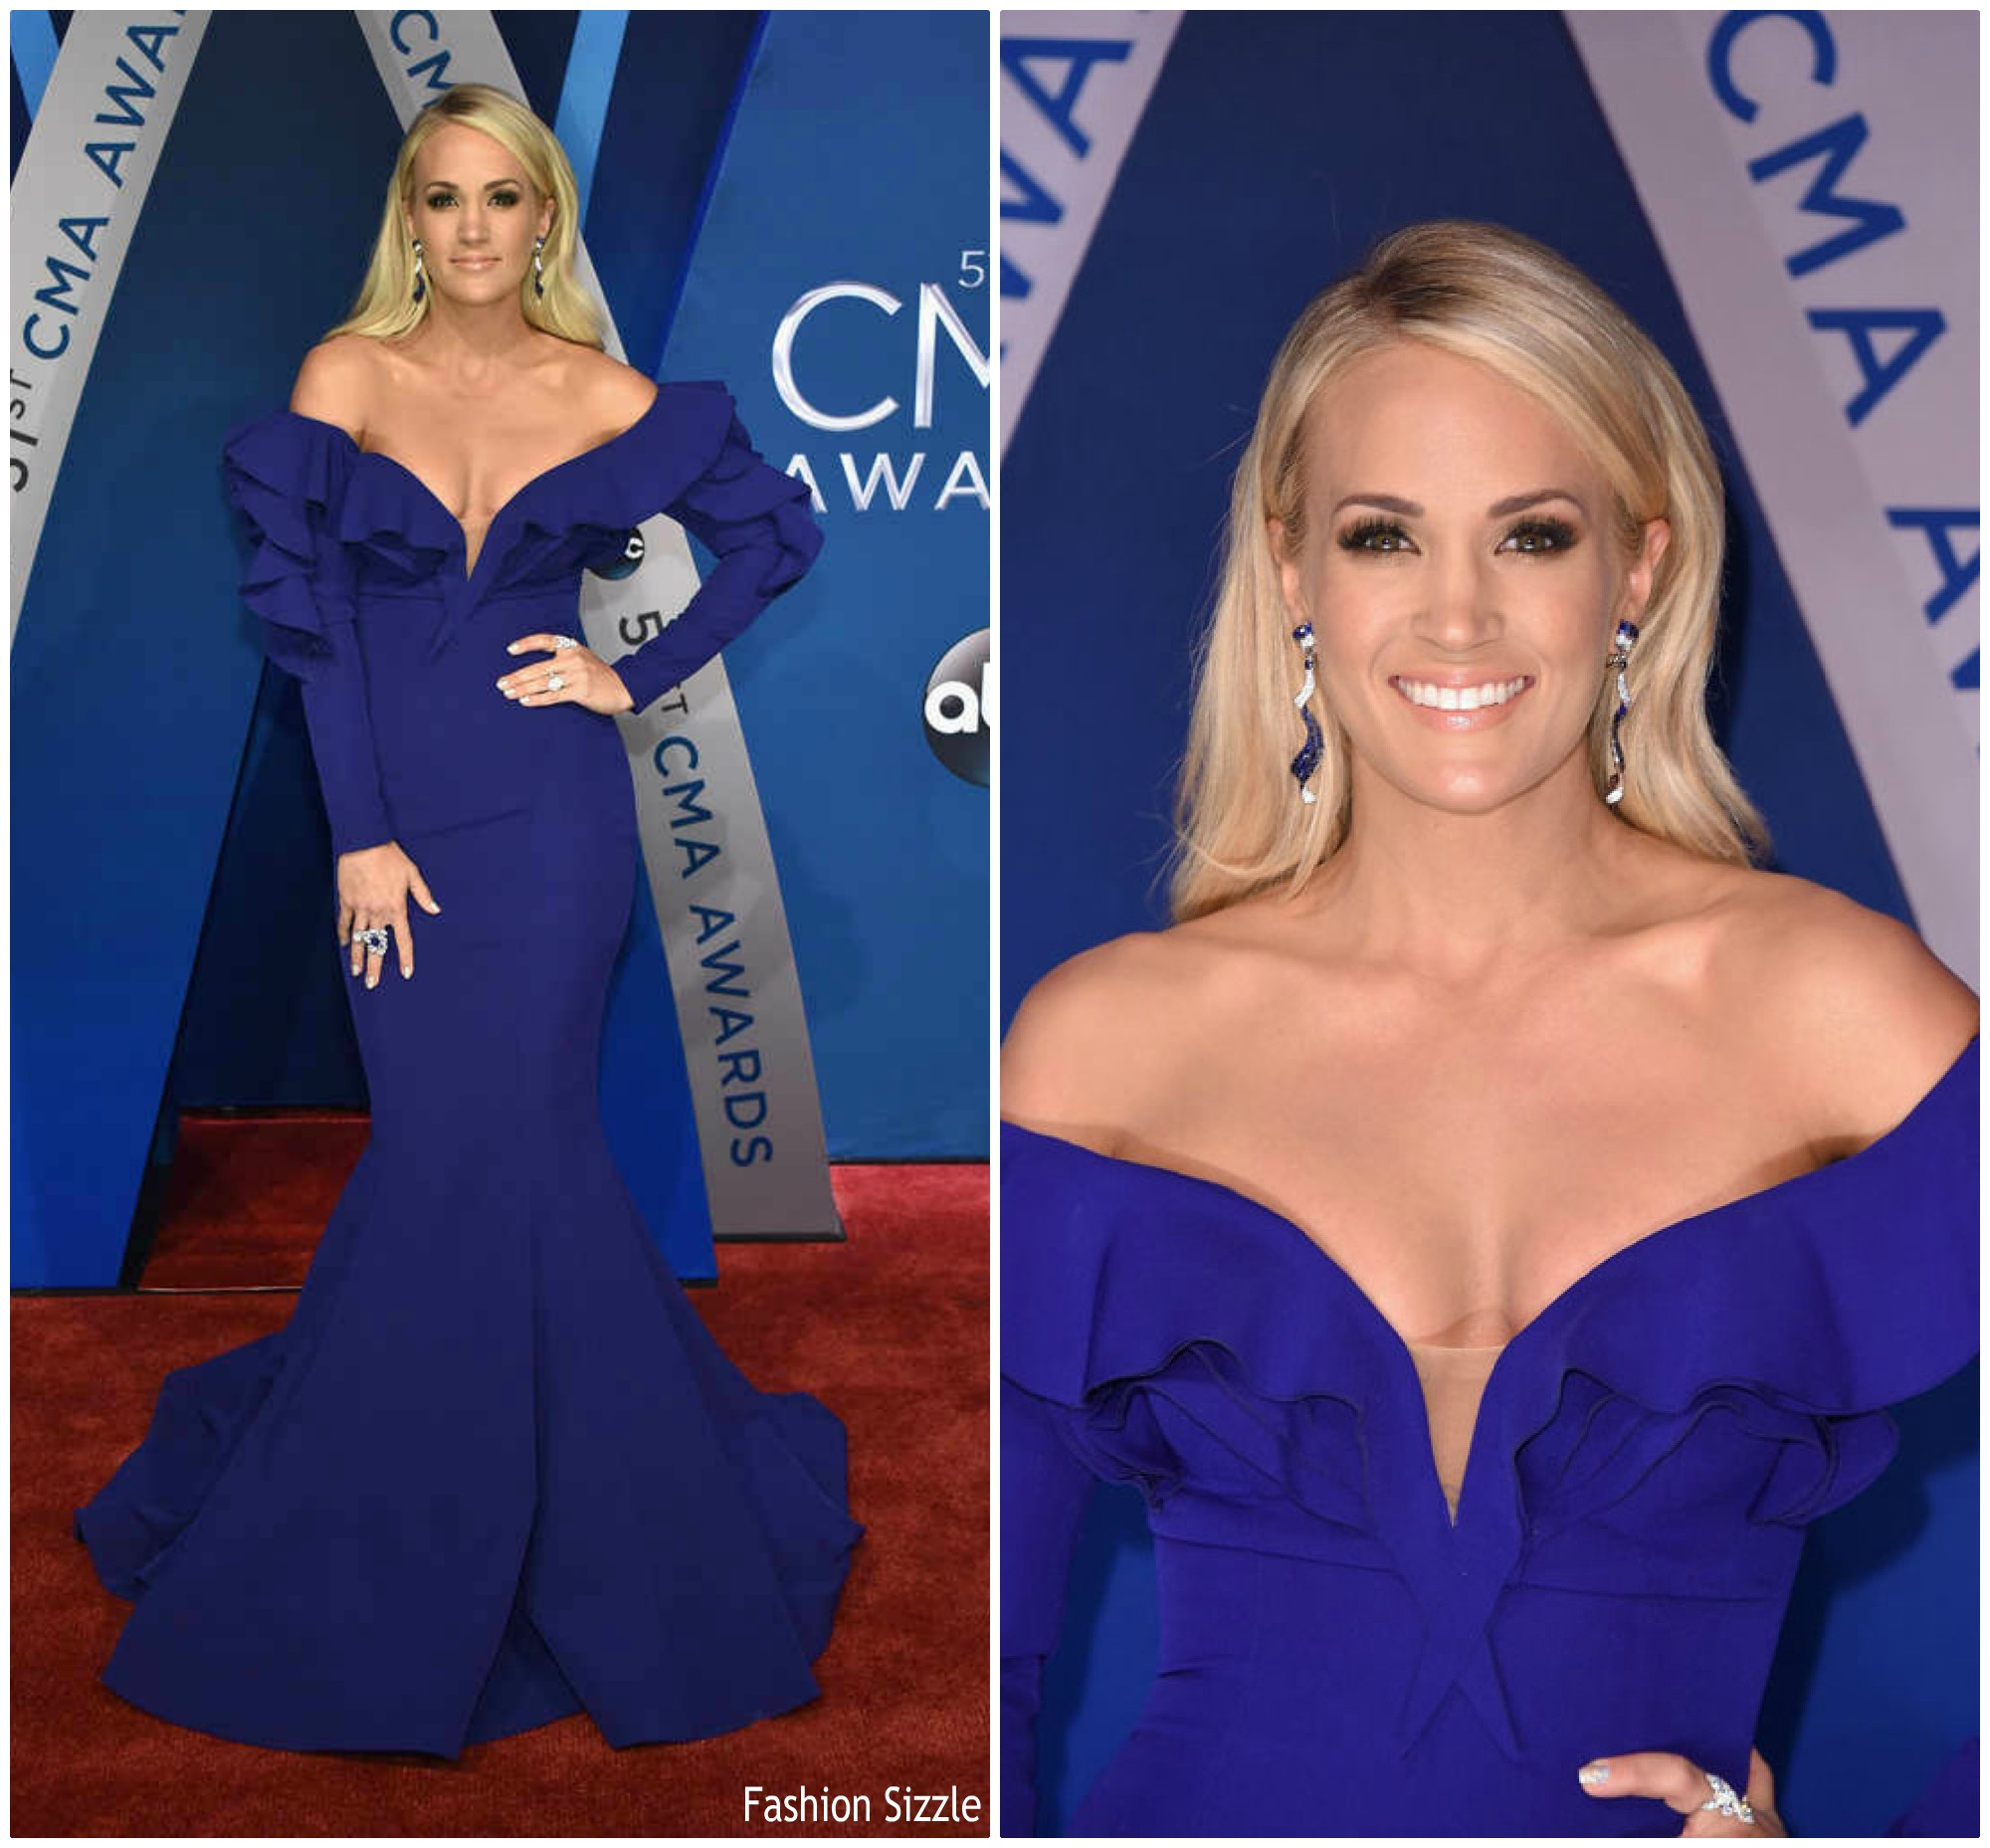 carrie-underwood-in-fouad-sarkis-couture-2017-cma-awards